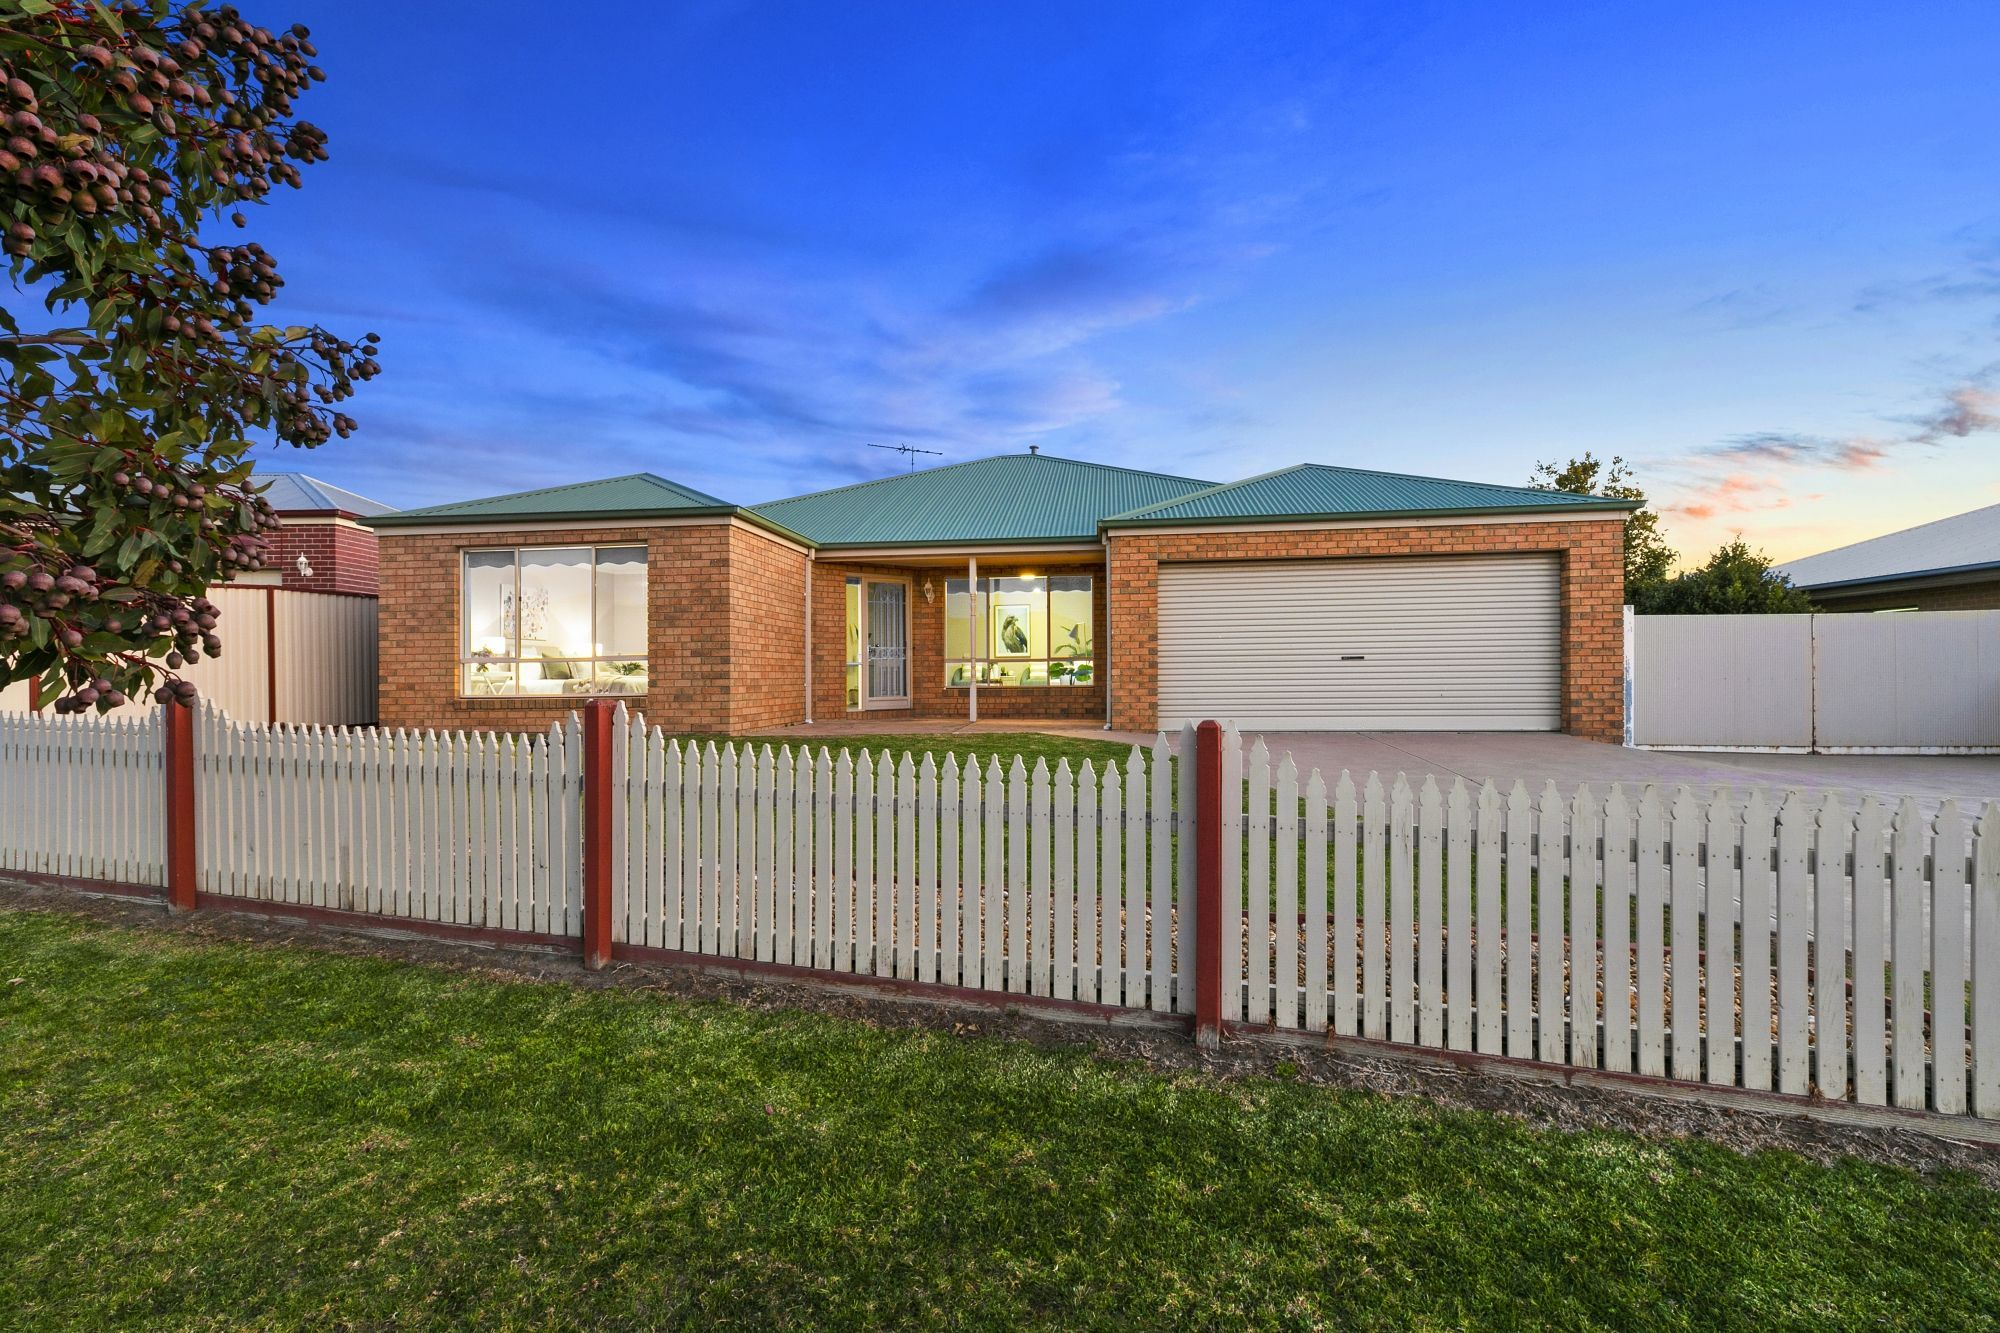 3 Humber Way, Drysdale VIC 3222